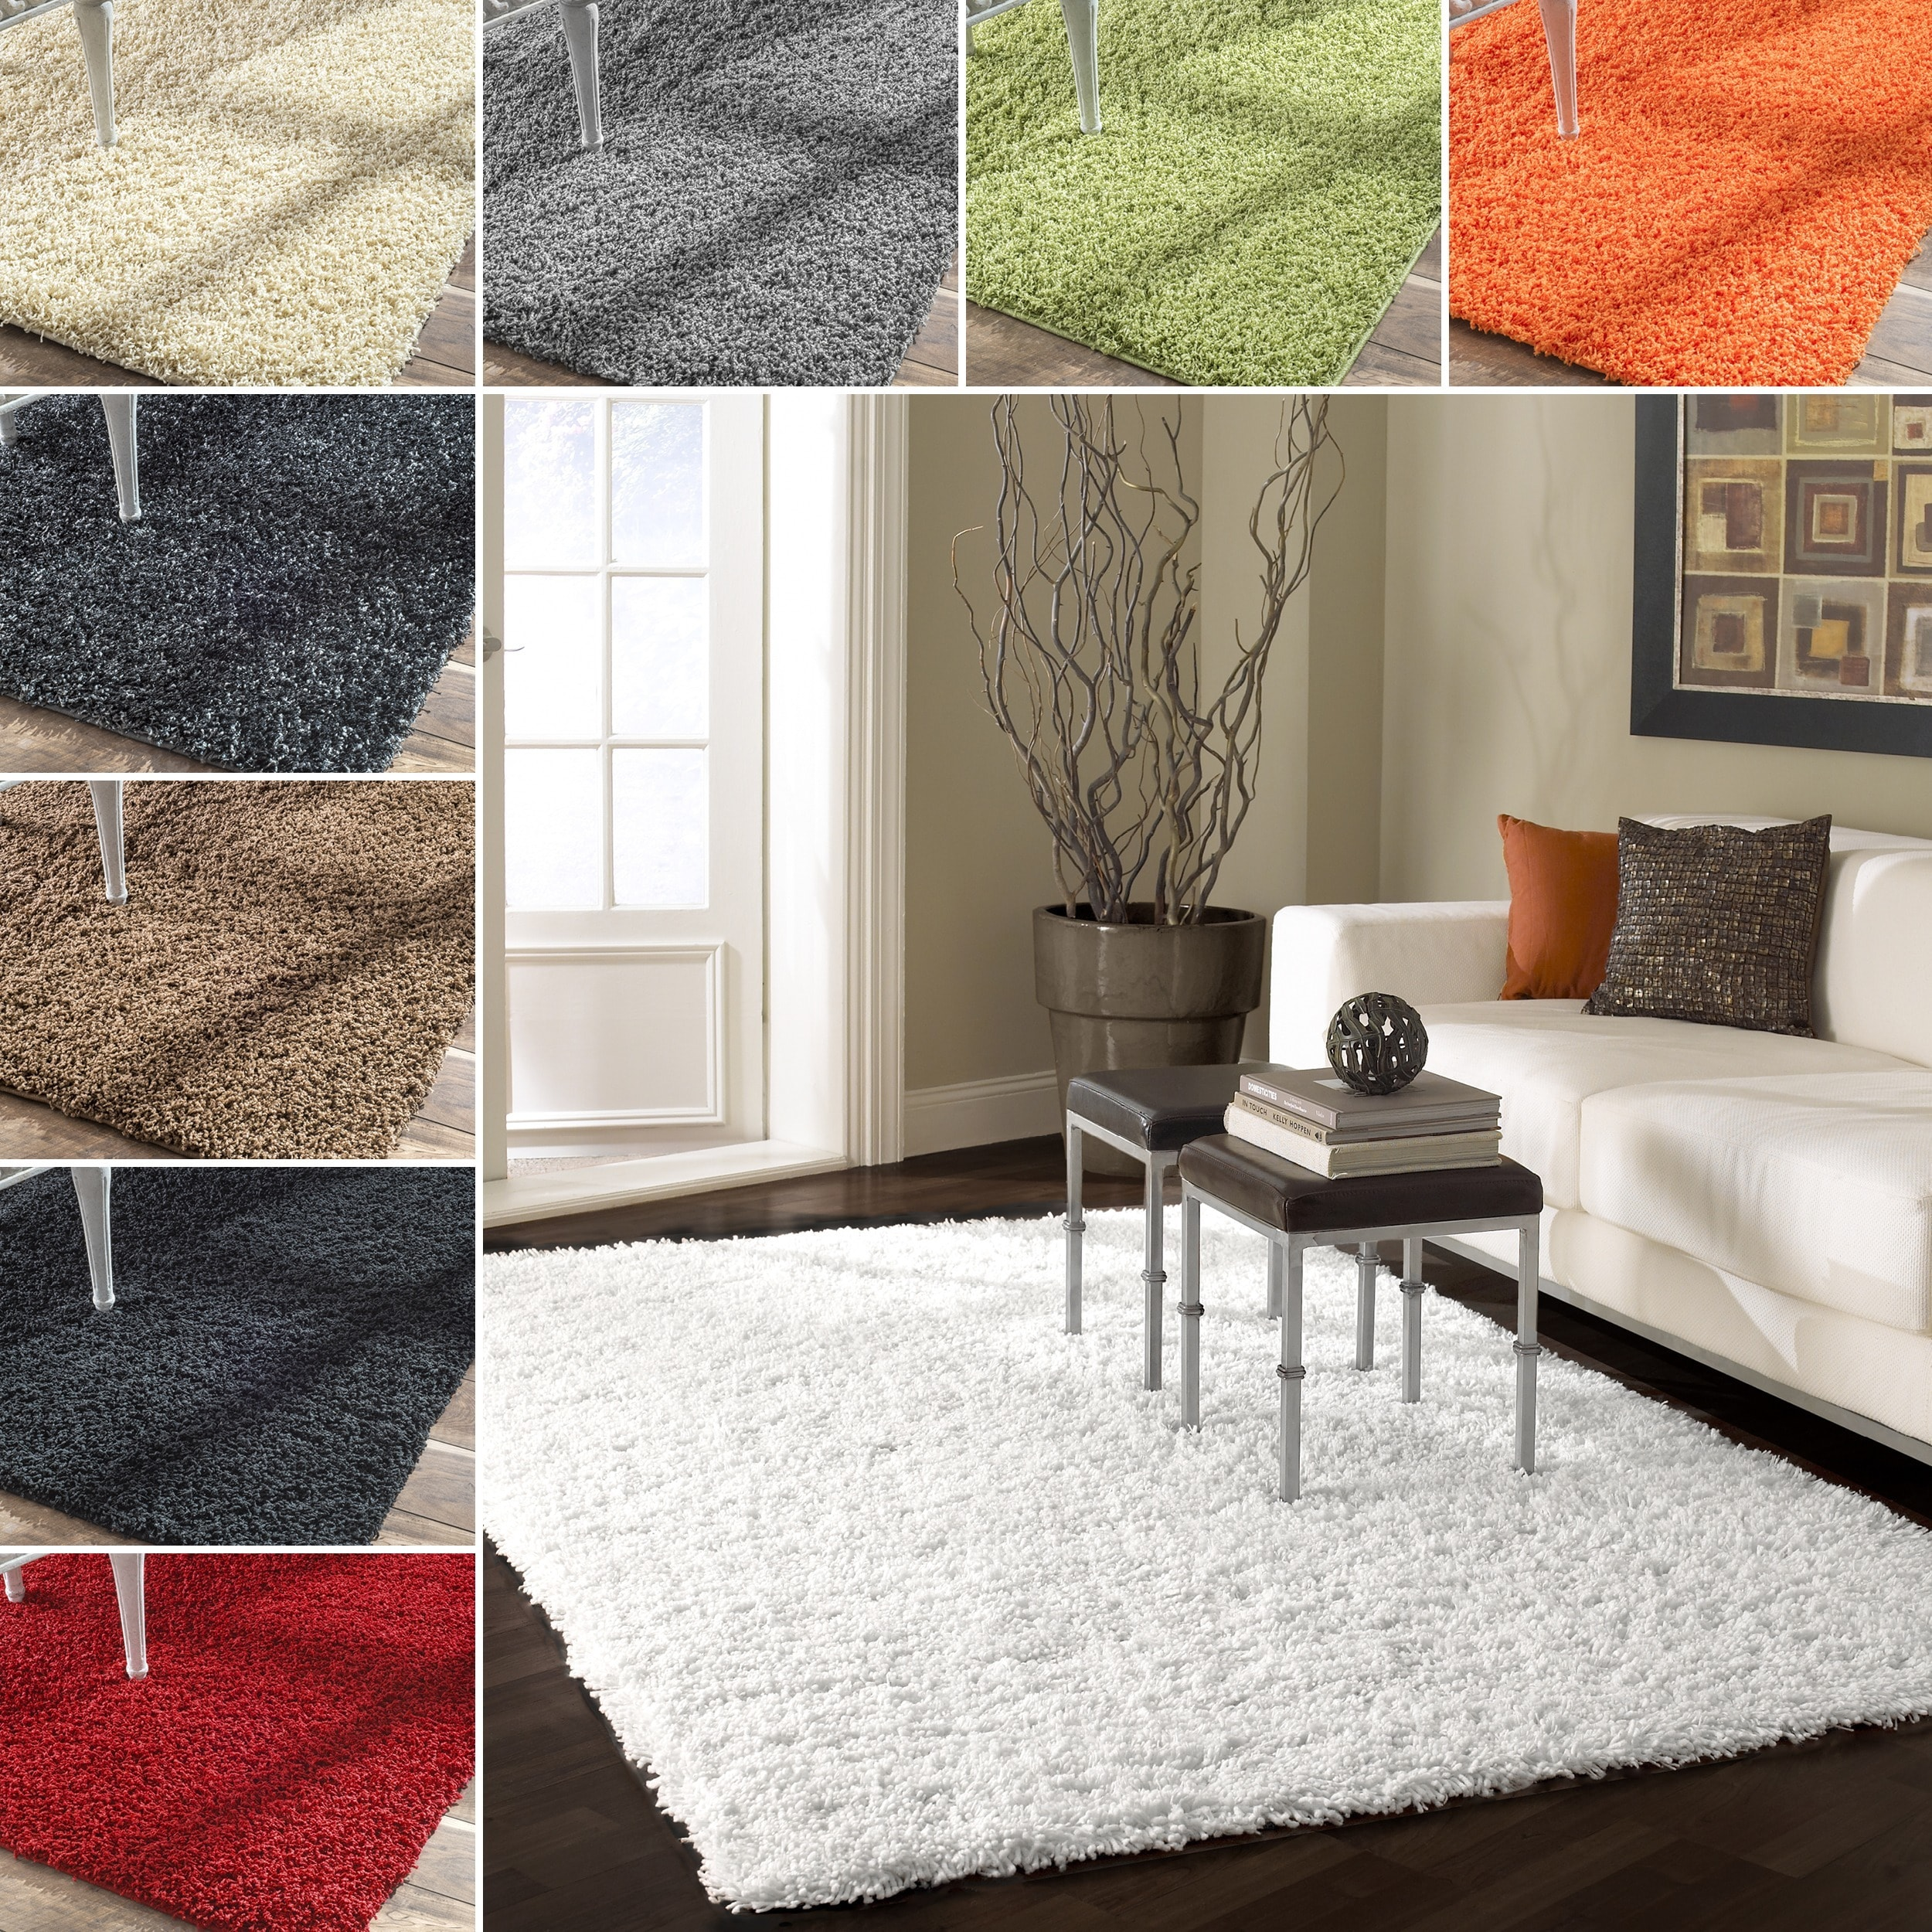 NuLOOM Alexa 'My Soft And Plush' Shag Rug (8' X 10